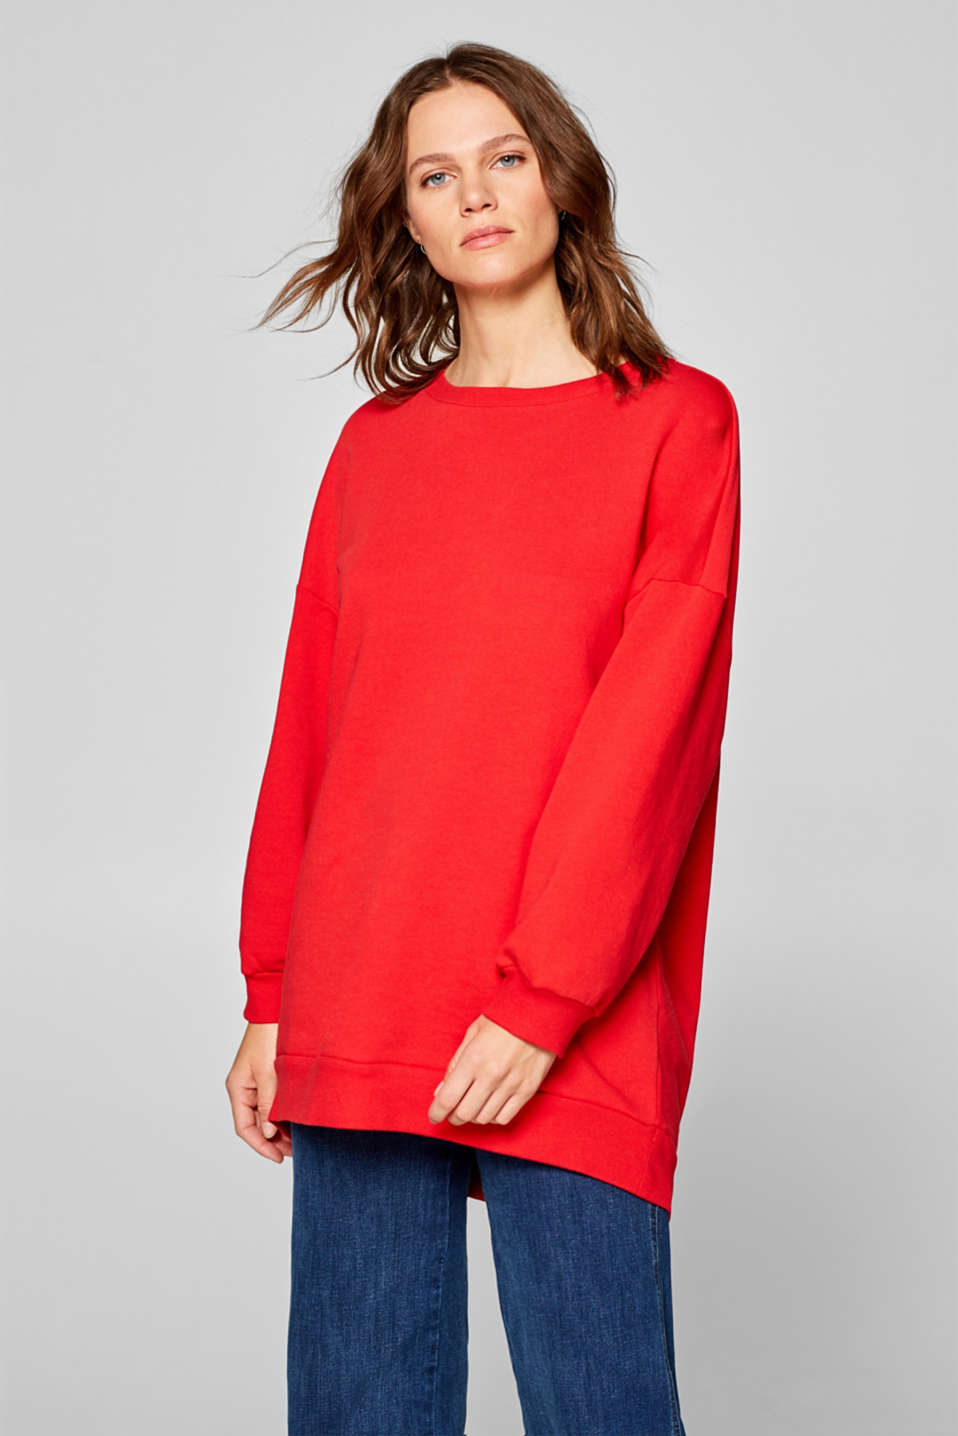 Esprit - Sweatshirt with draped effect, 100% cotton